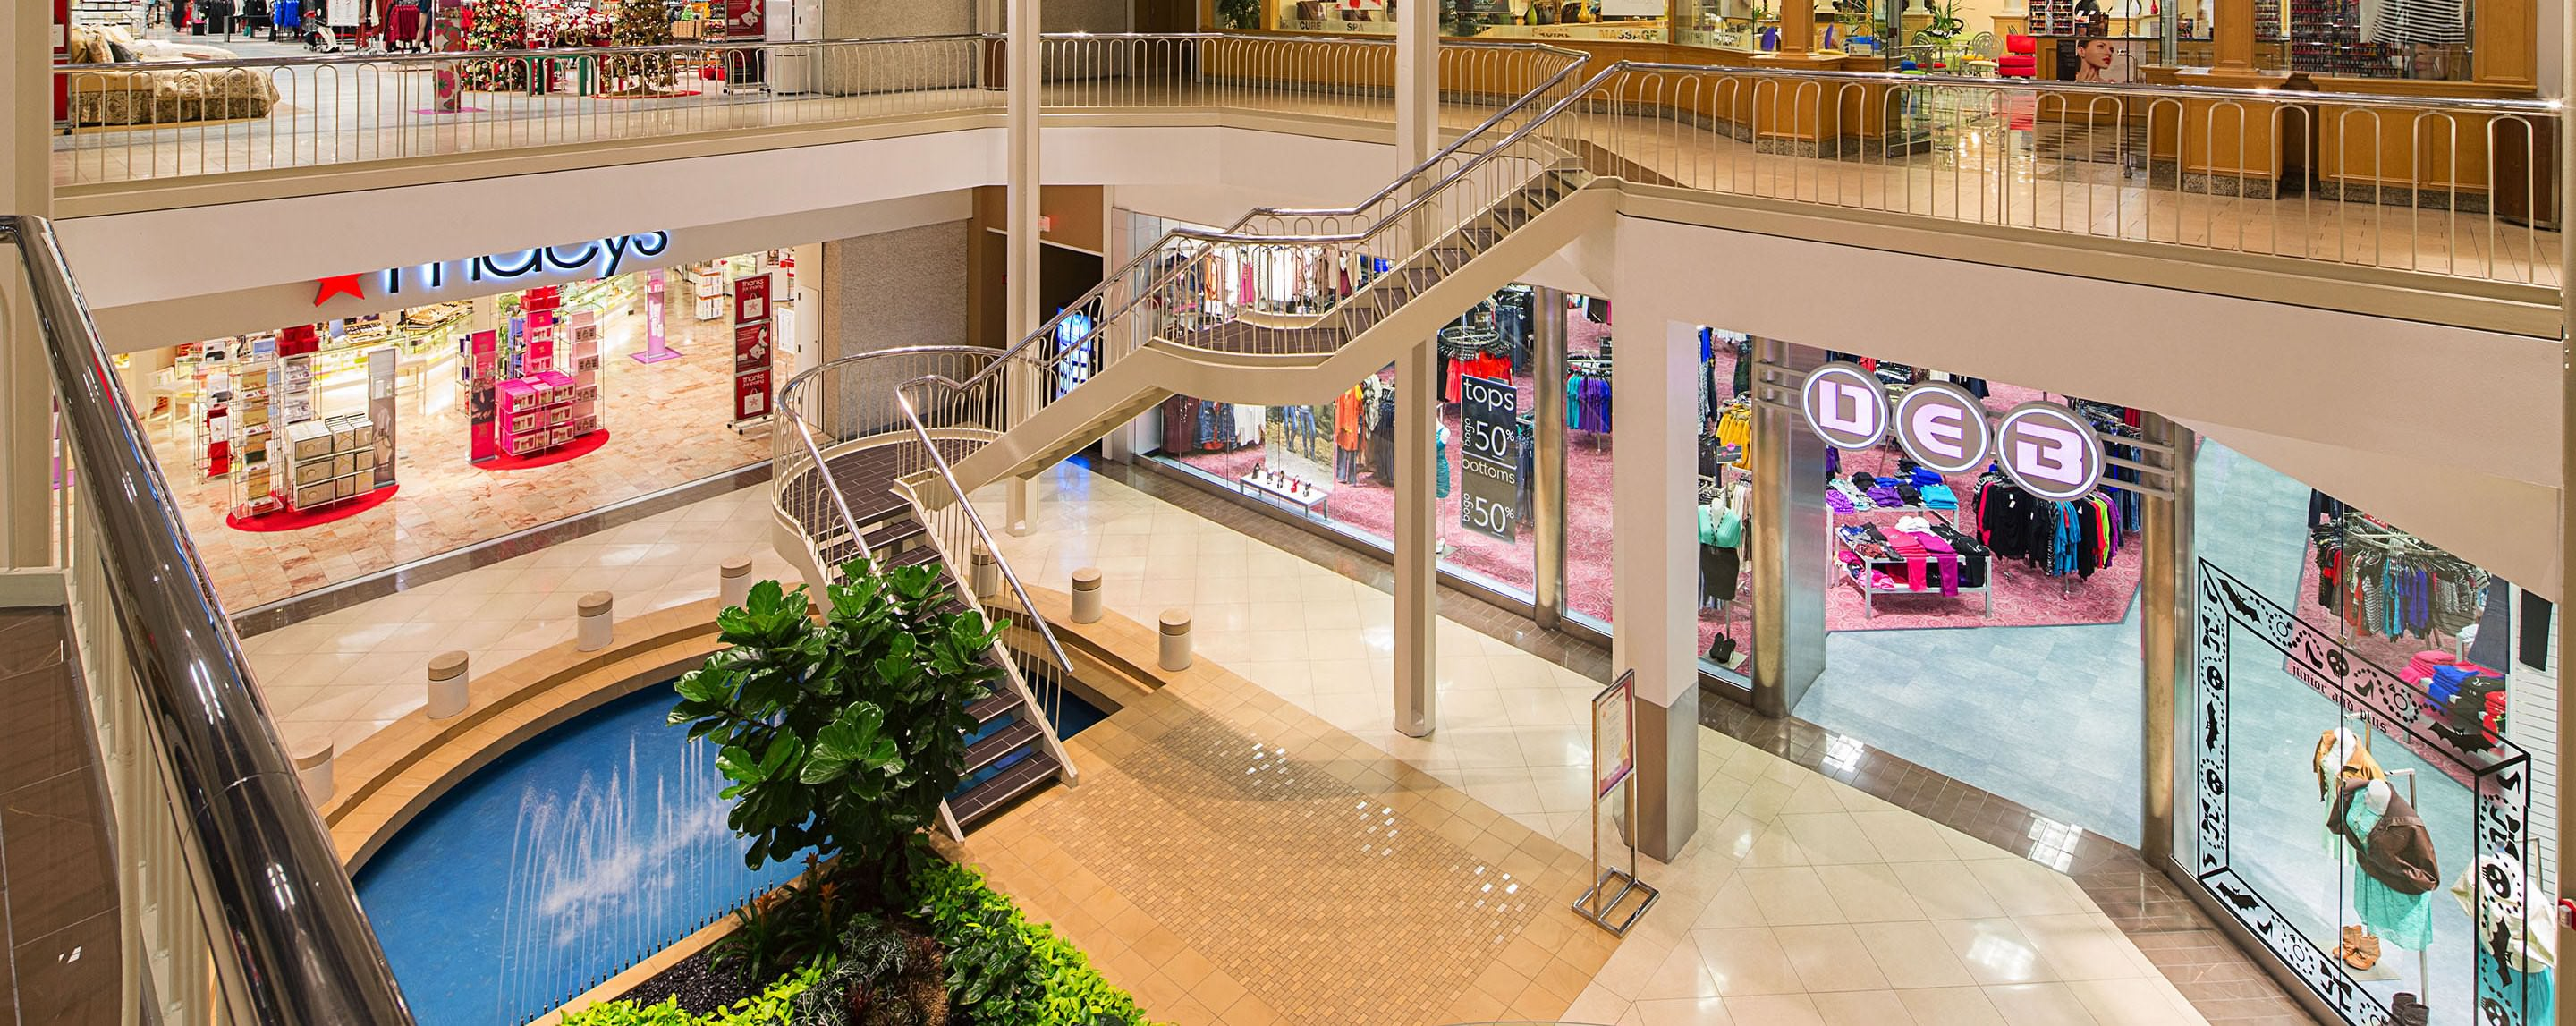 A second story shot of a staircase in the Hulen Mall. A Macy's storefront stands on the first floor.